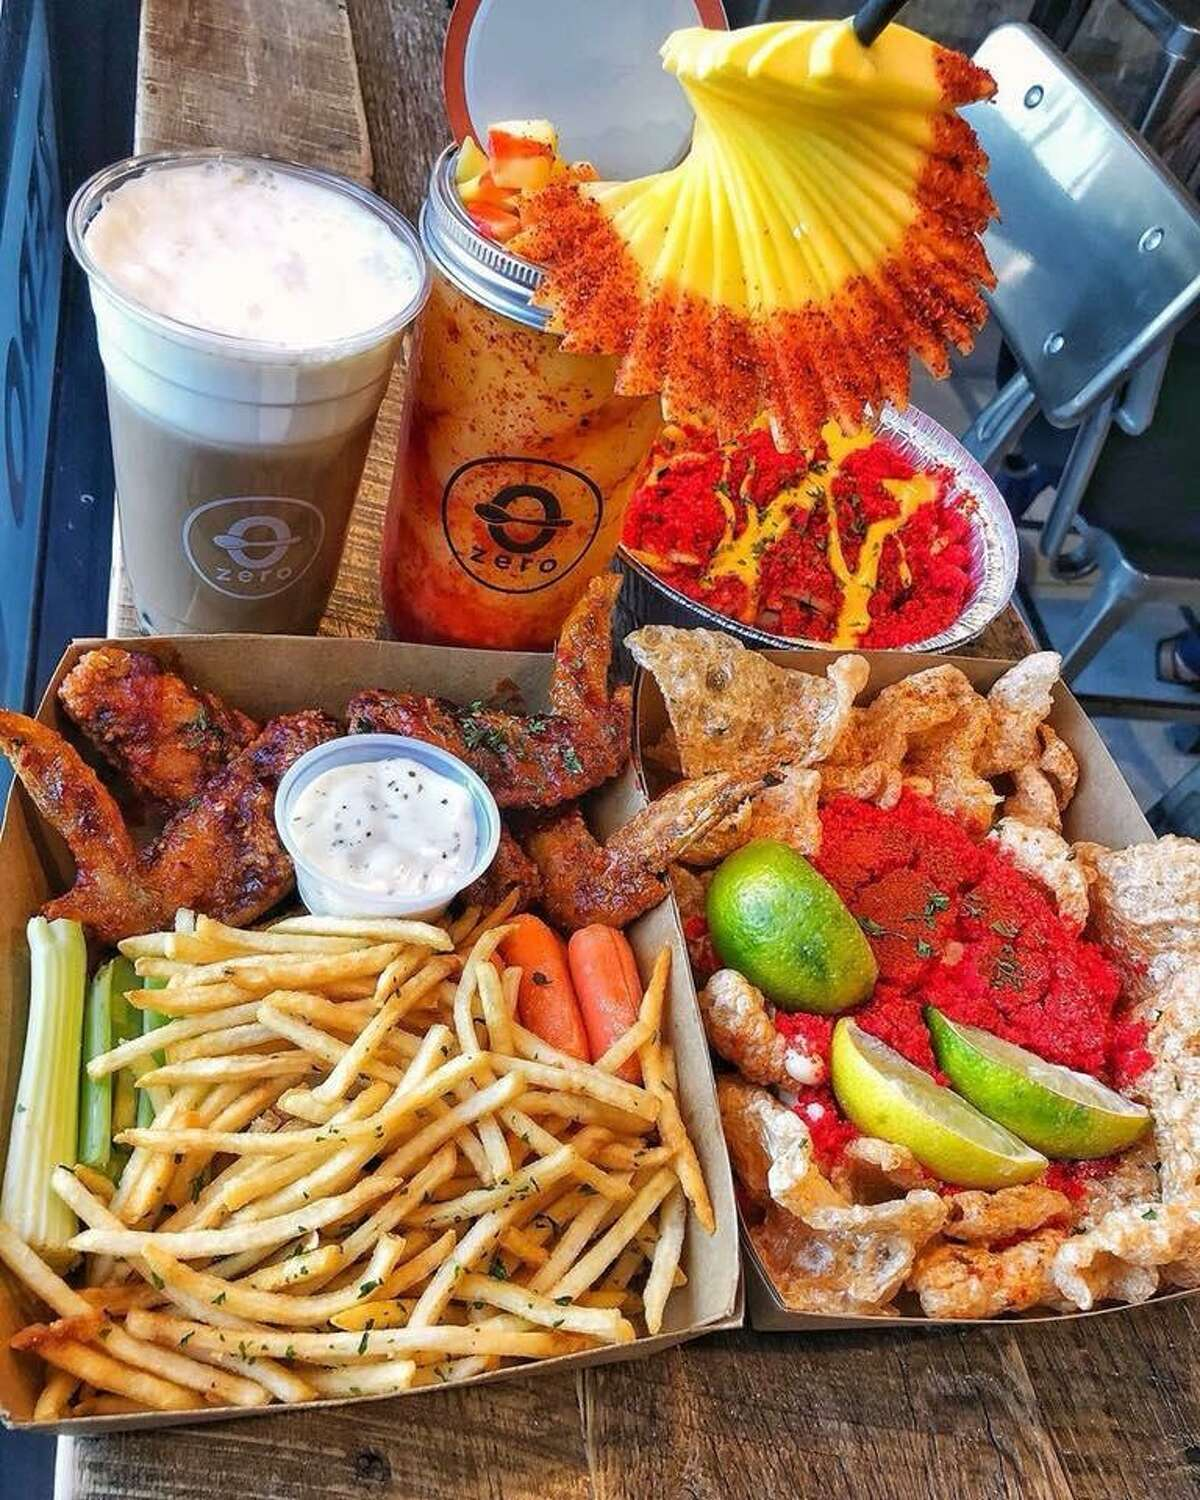 Pictures are some wings with a side of fries, XXTRA Flamin Hot Chicharrones, XXTRA Flamin Hot Elote and the popular Mangonada with chunks of mango on the straw.